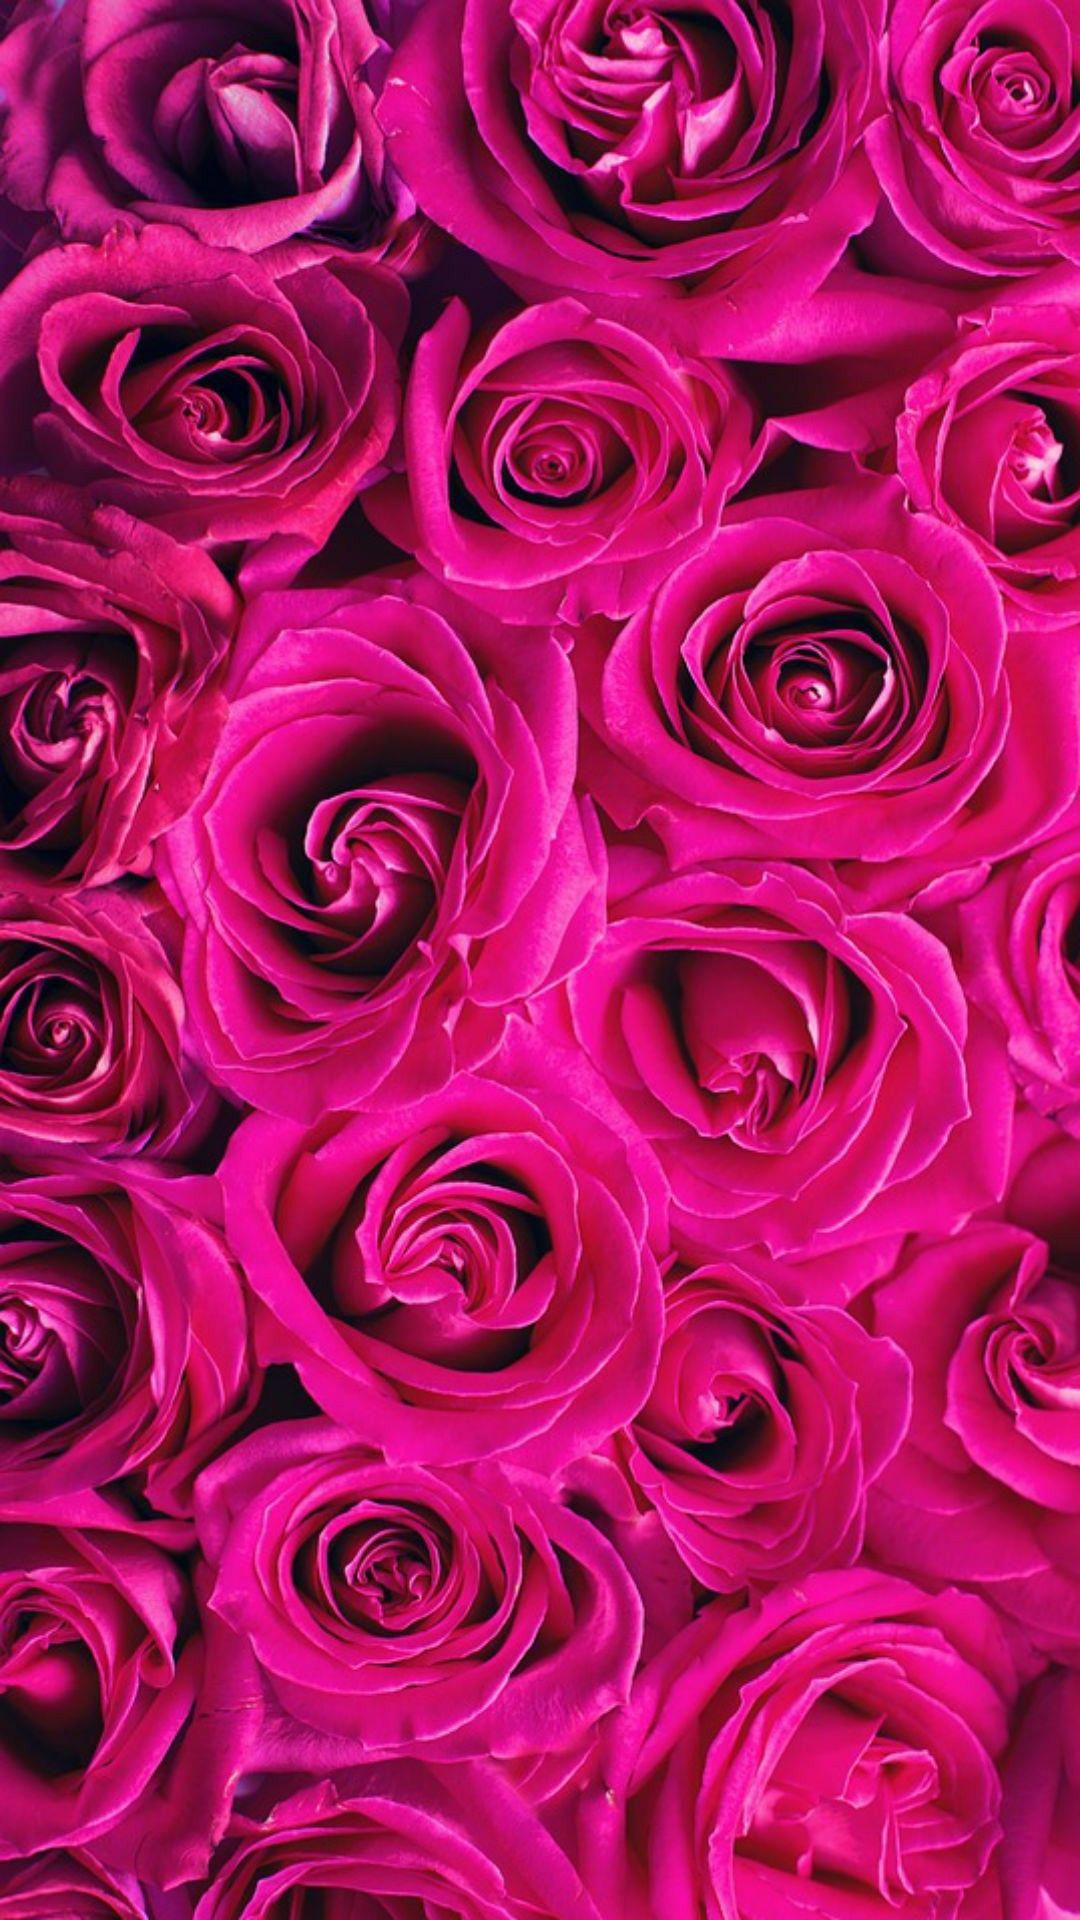 Hot Pink Pinklips Pink Wallpaper Iphone Pink Roses Background